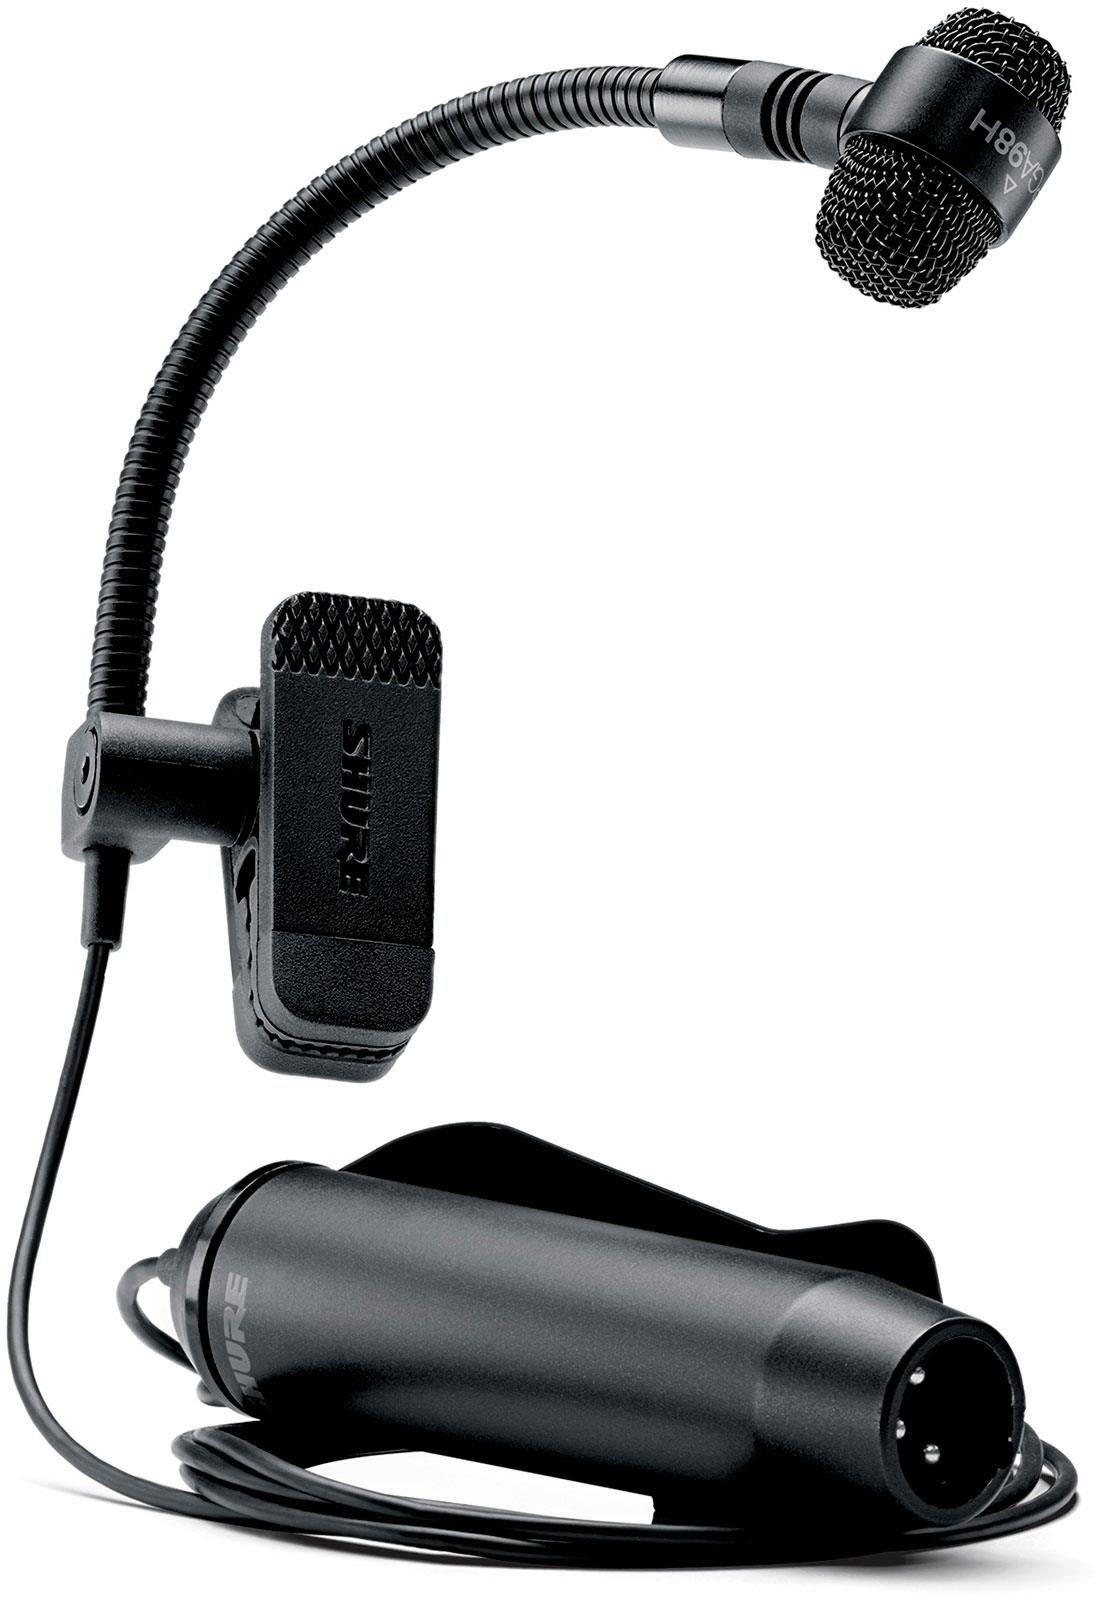 Shure Pga98h With Xlr Preamp Keymusic Electret Microphone To Wiring Together Sc4060 Dpa Microphones For Wind Instrument